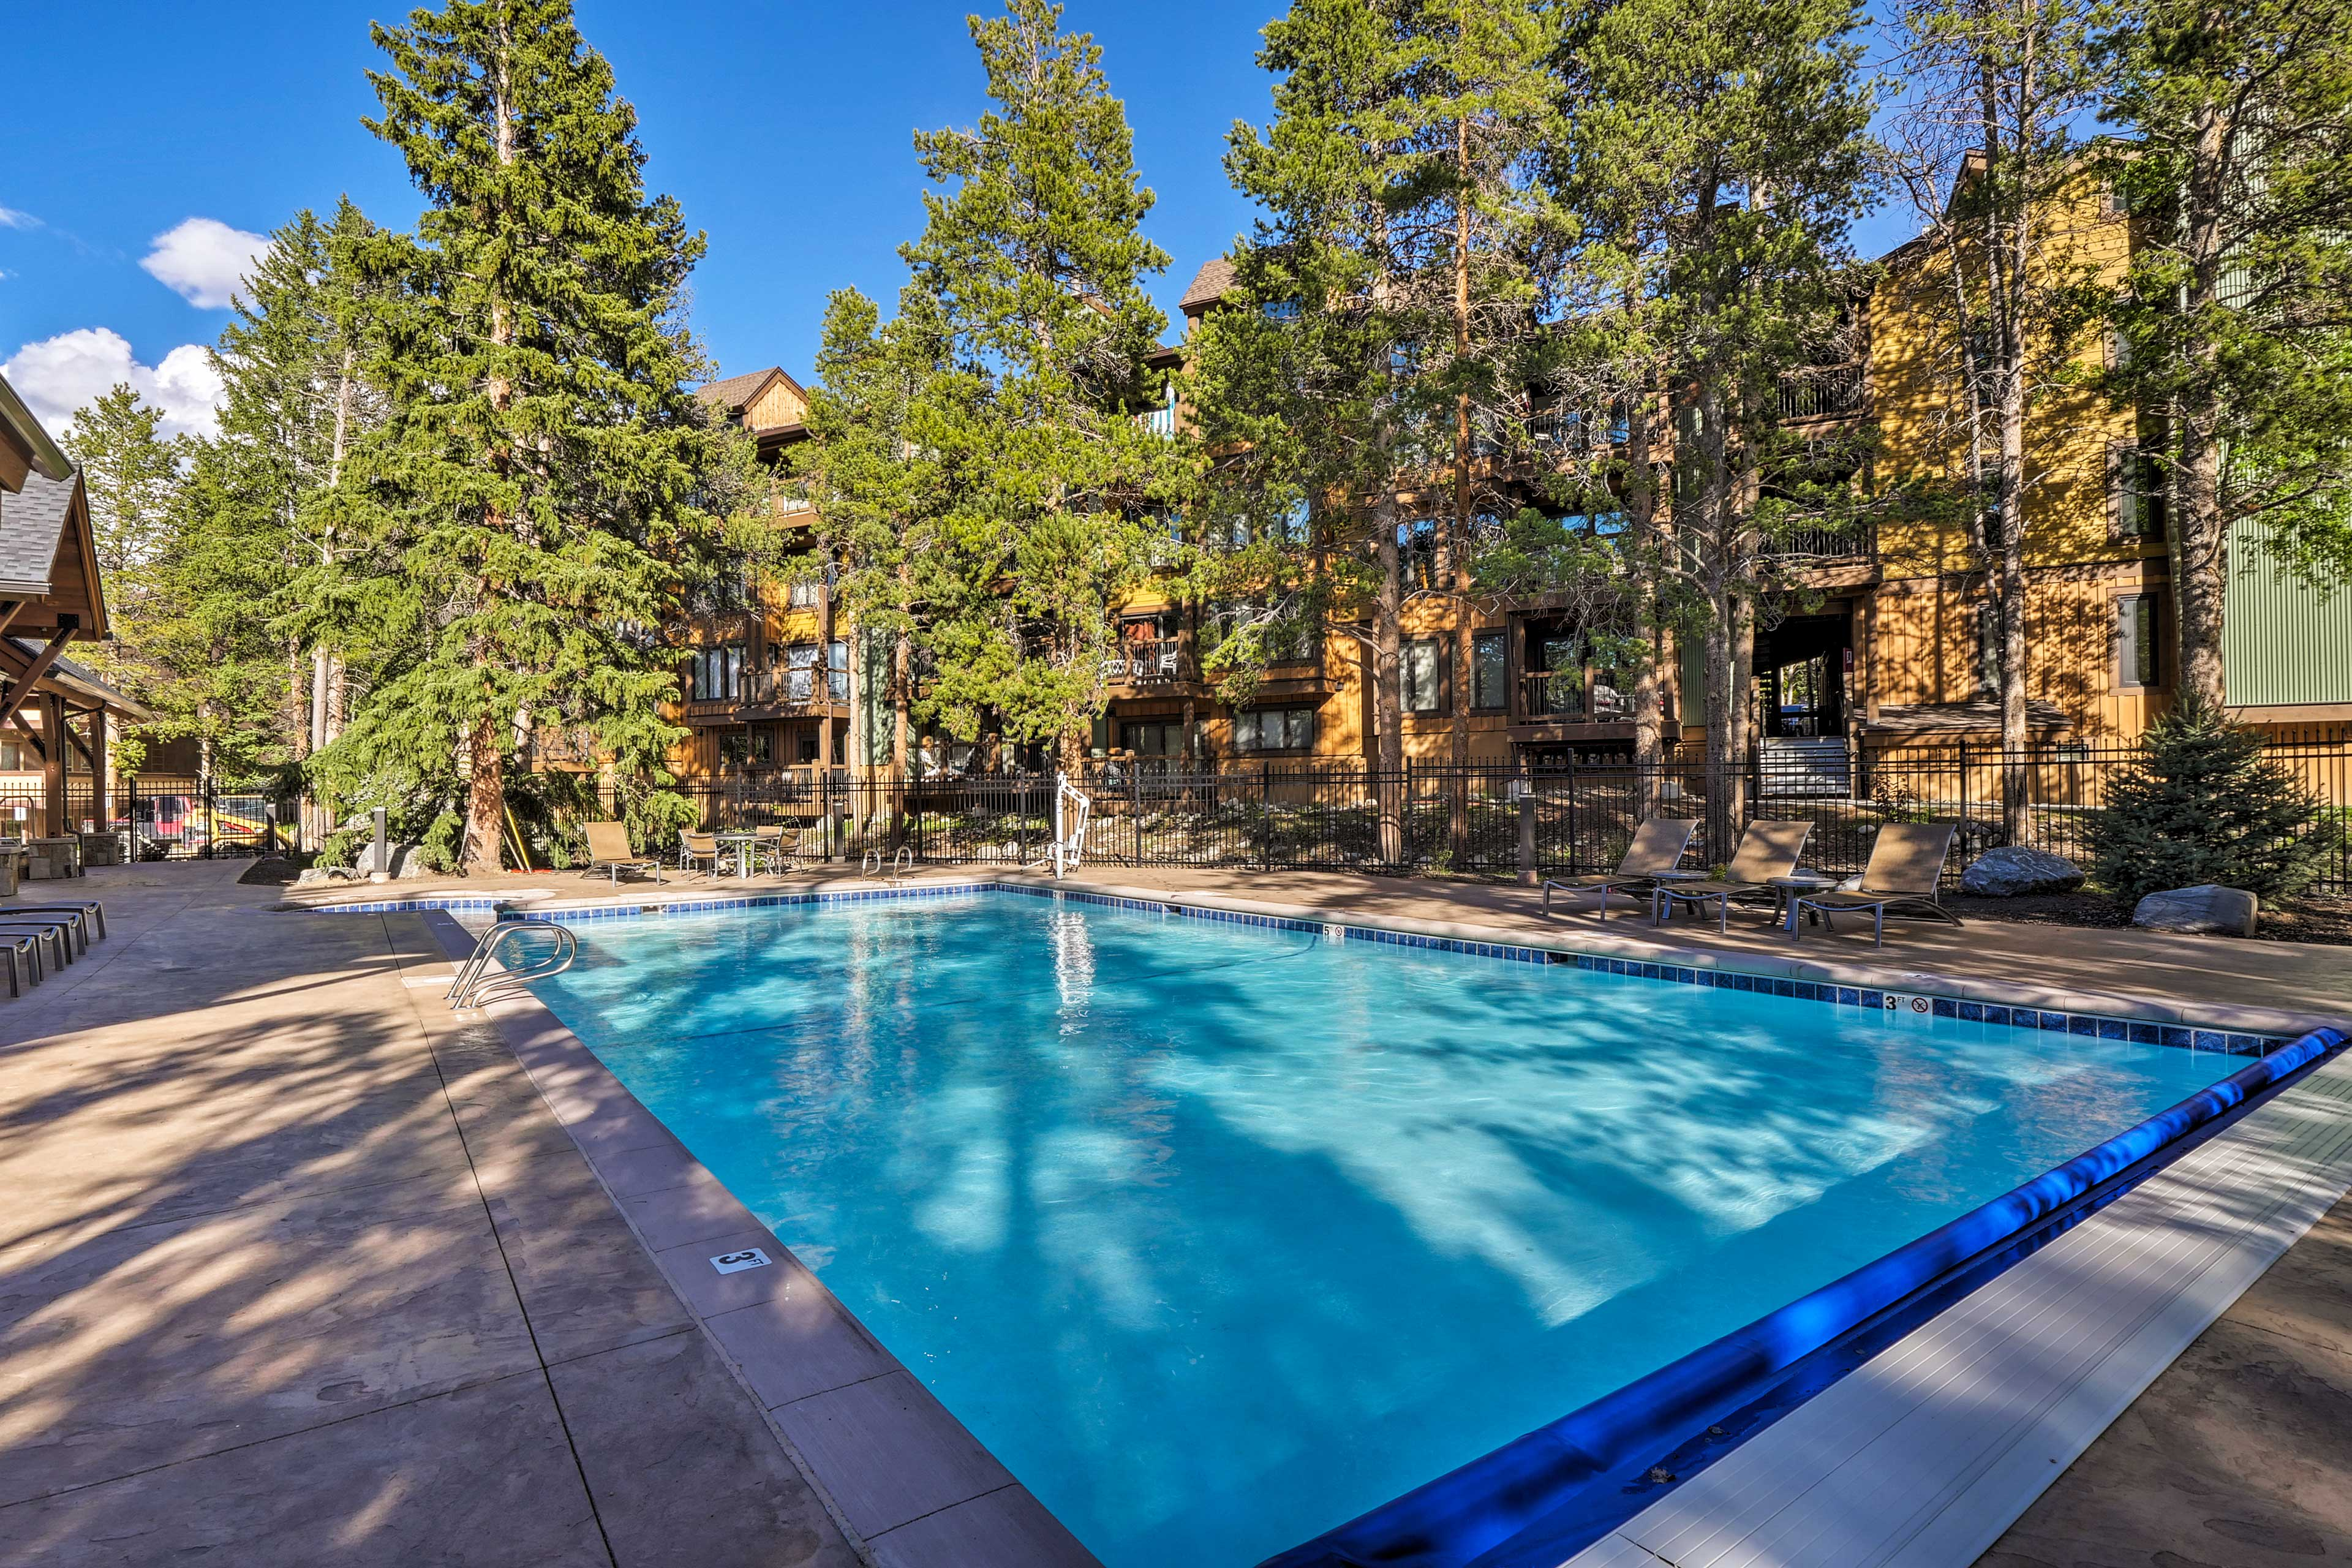 Enjoy access to a community pool, multiple hot tubs, and more!